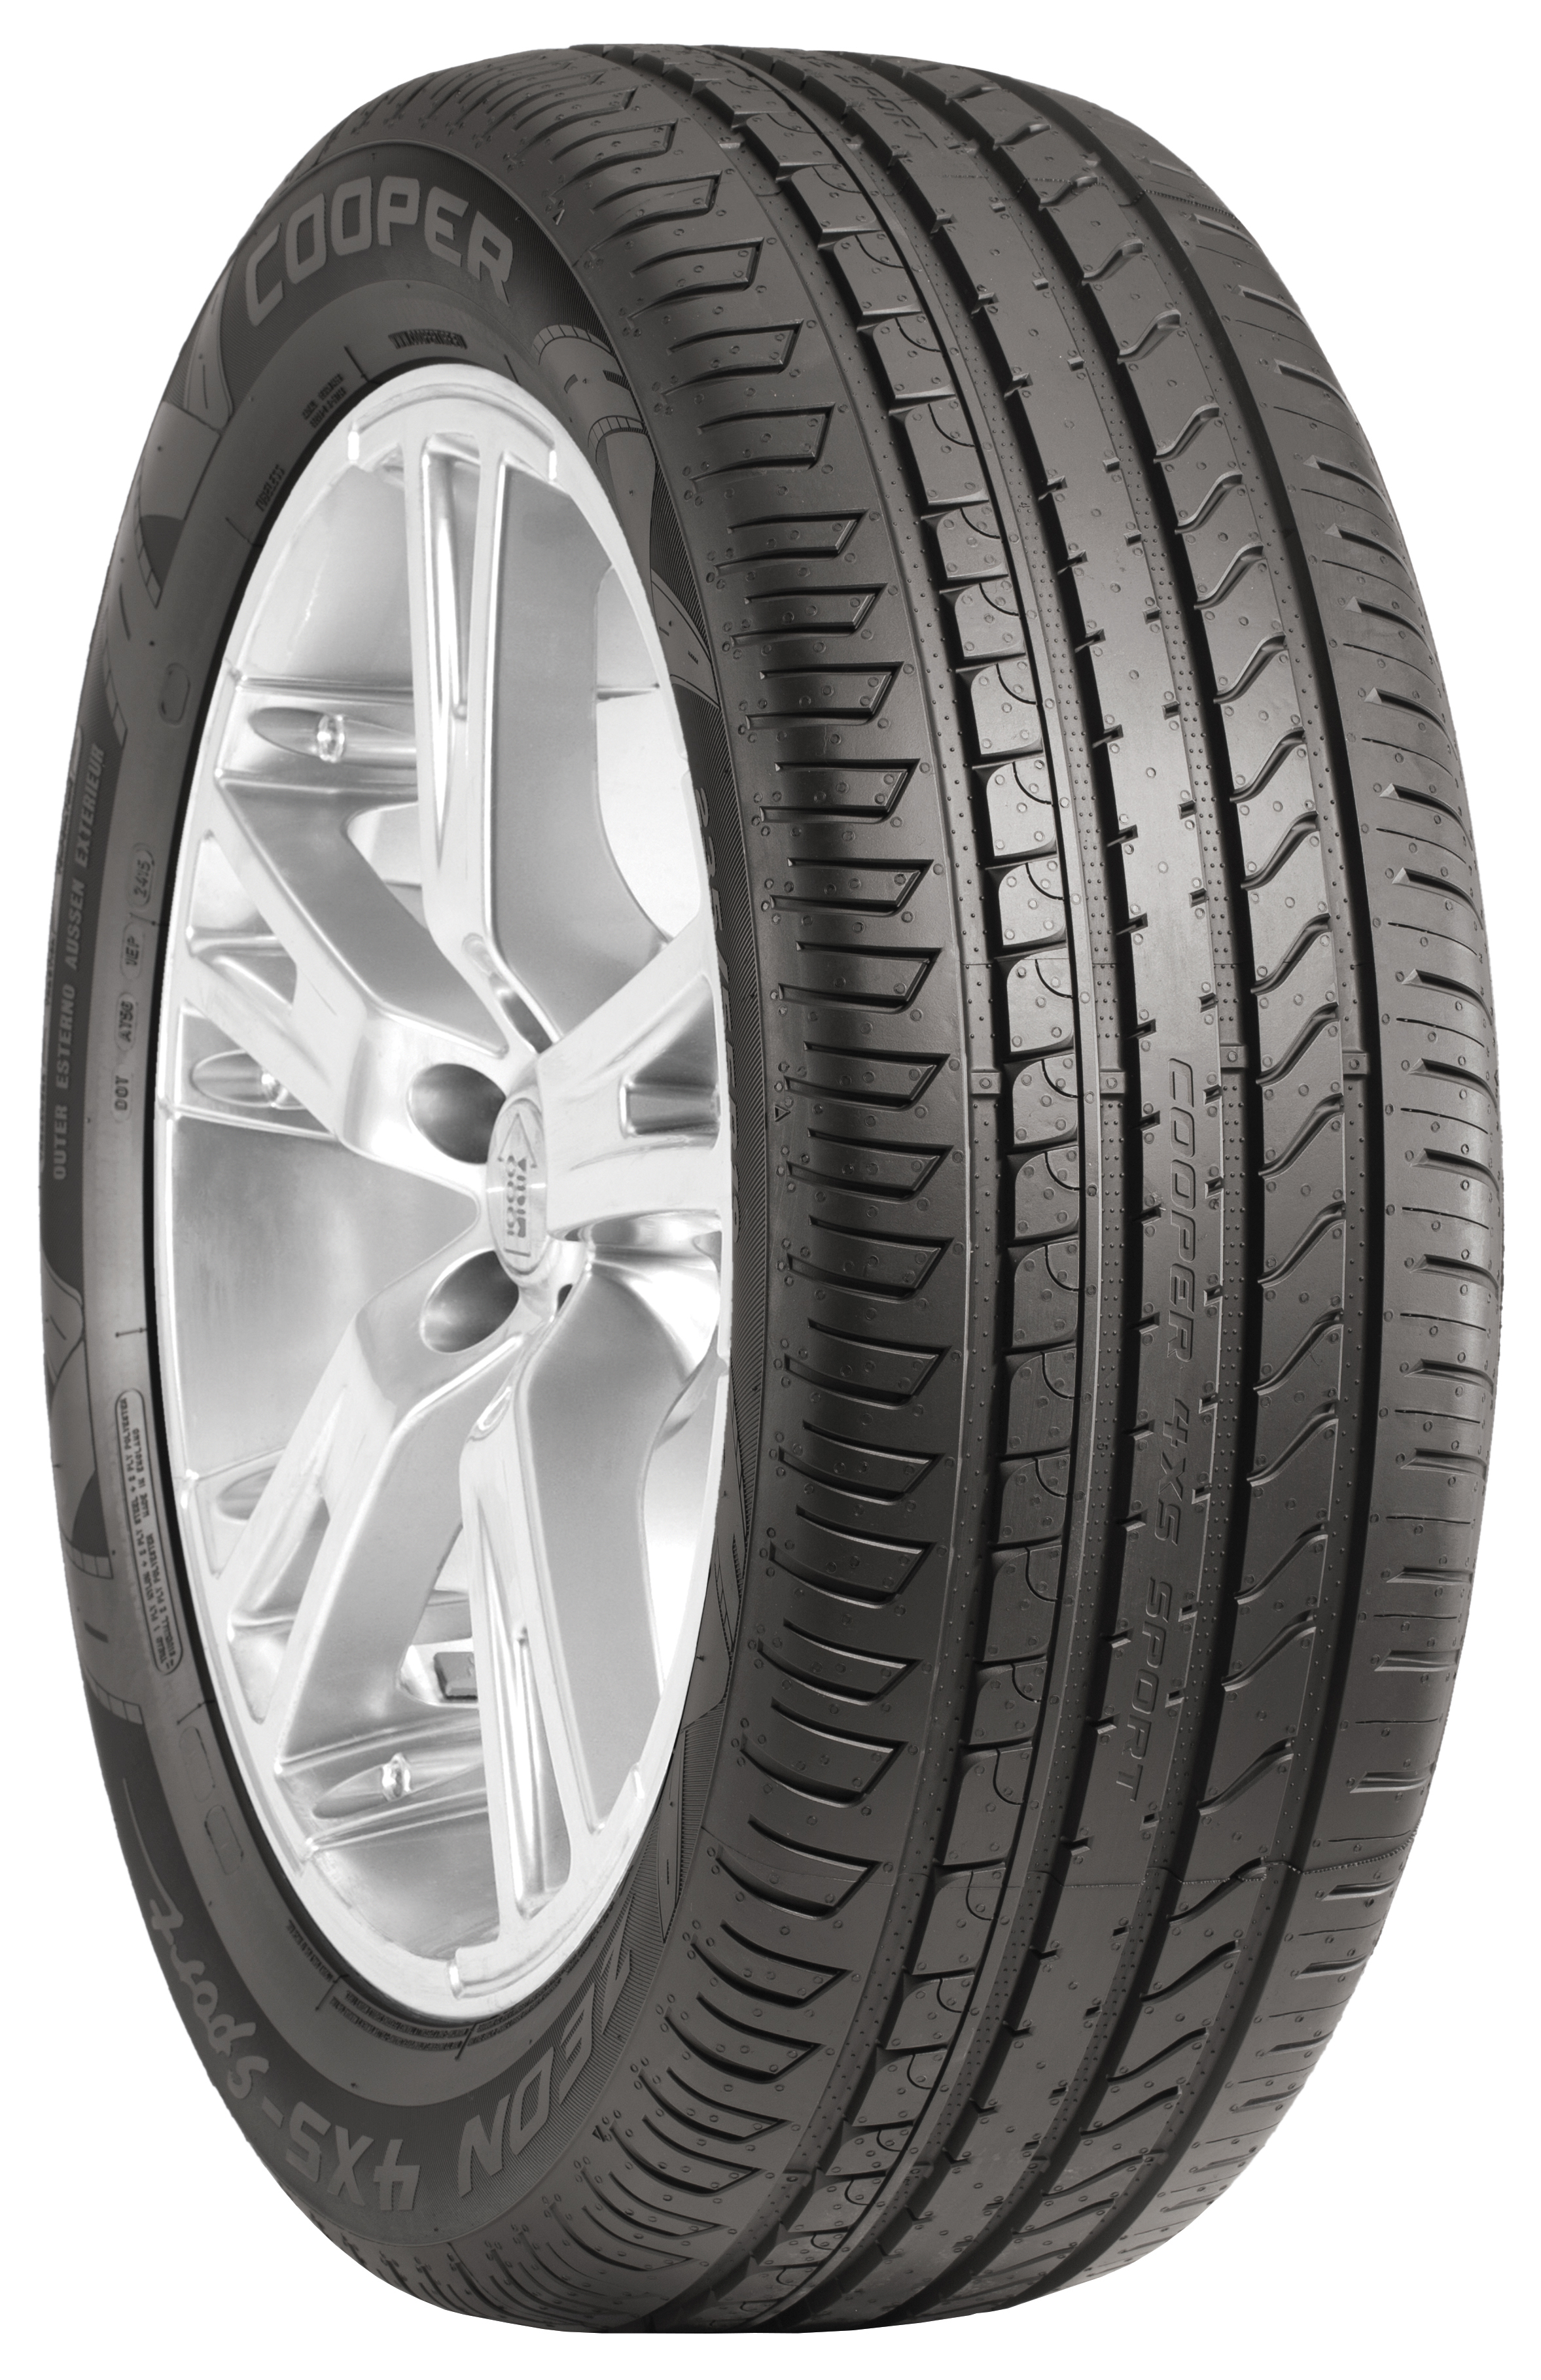 Cooper Zeon Sport Suv Tire Ranks Highly In European Testing